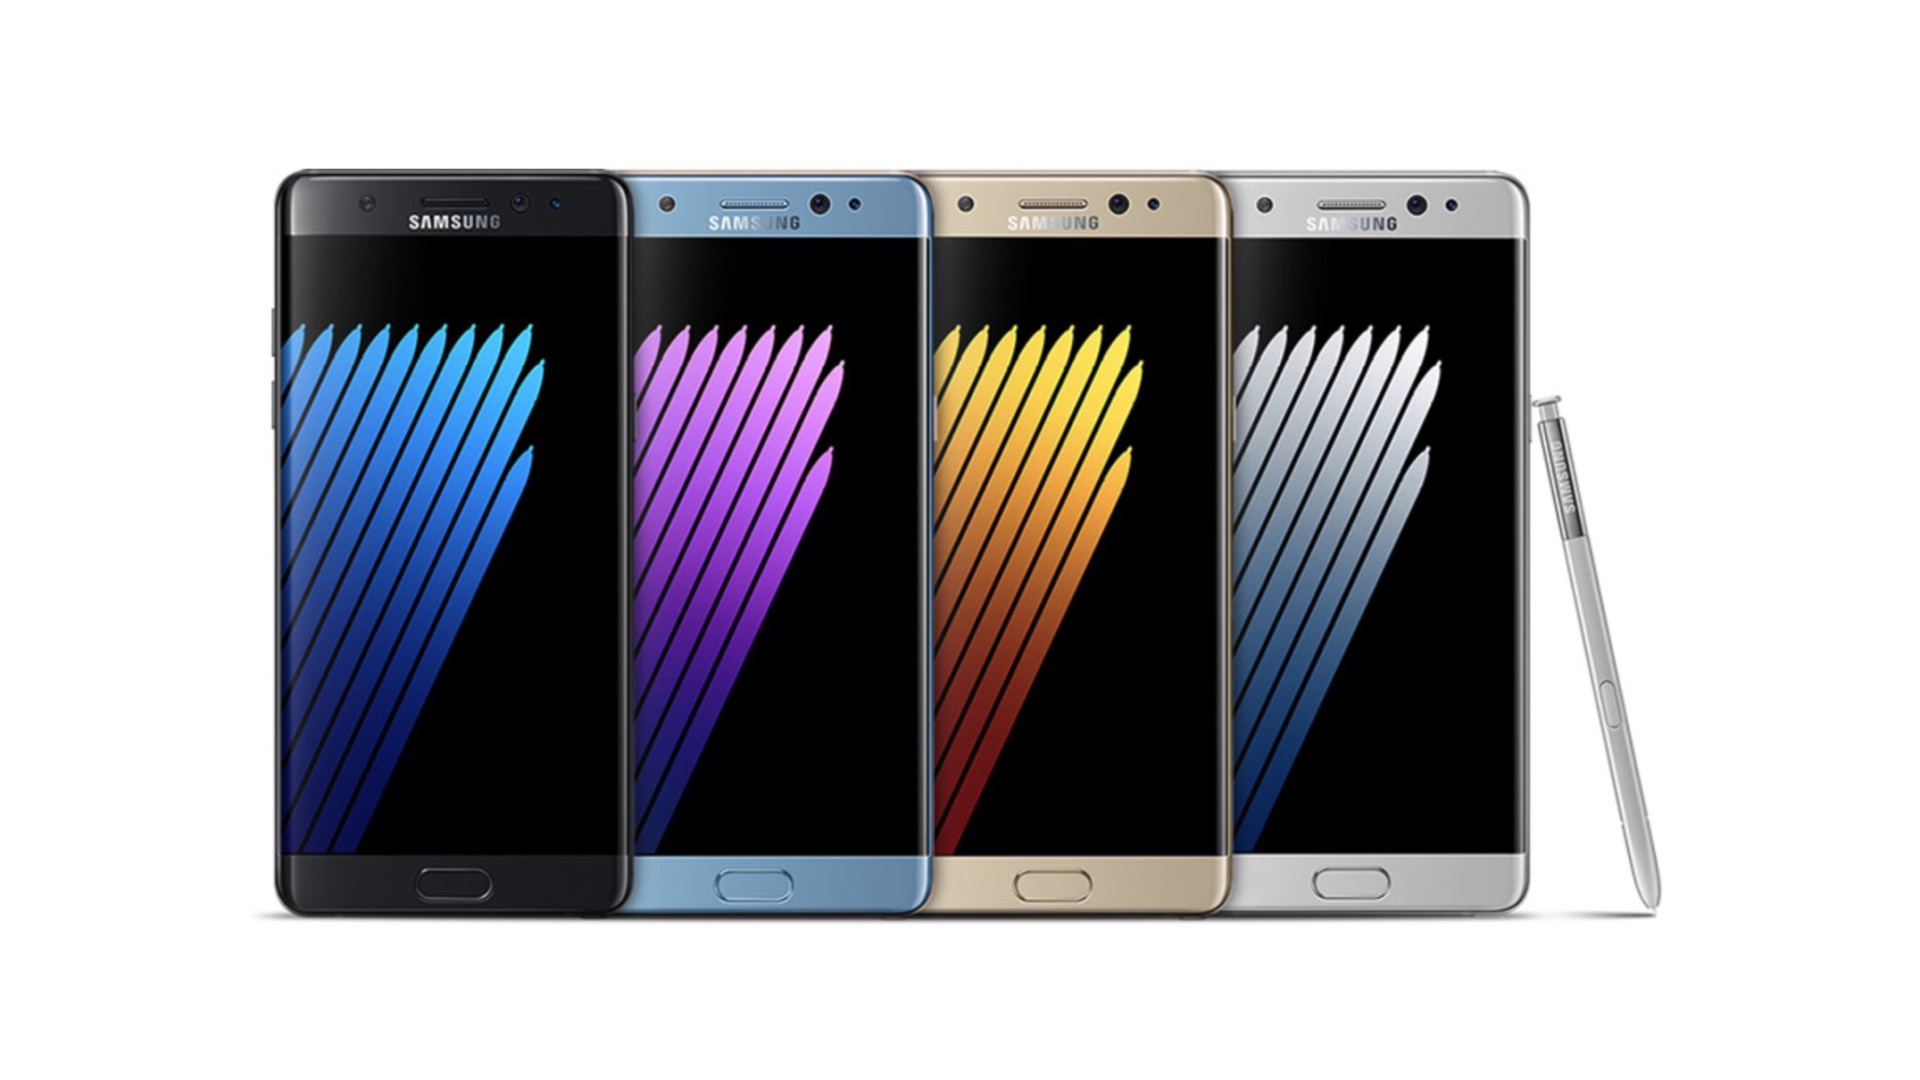 Replacement Galaxy Note 7 Batteries Attracting Complaints